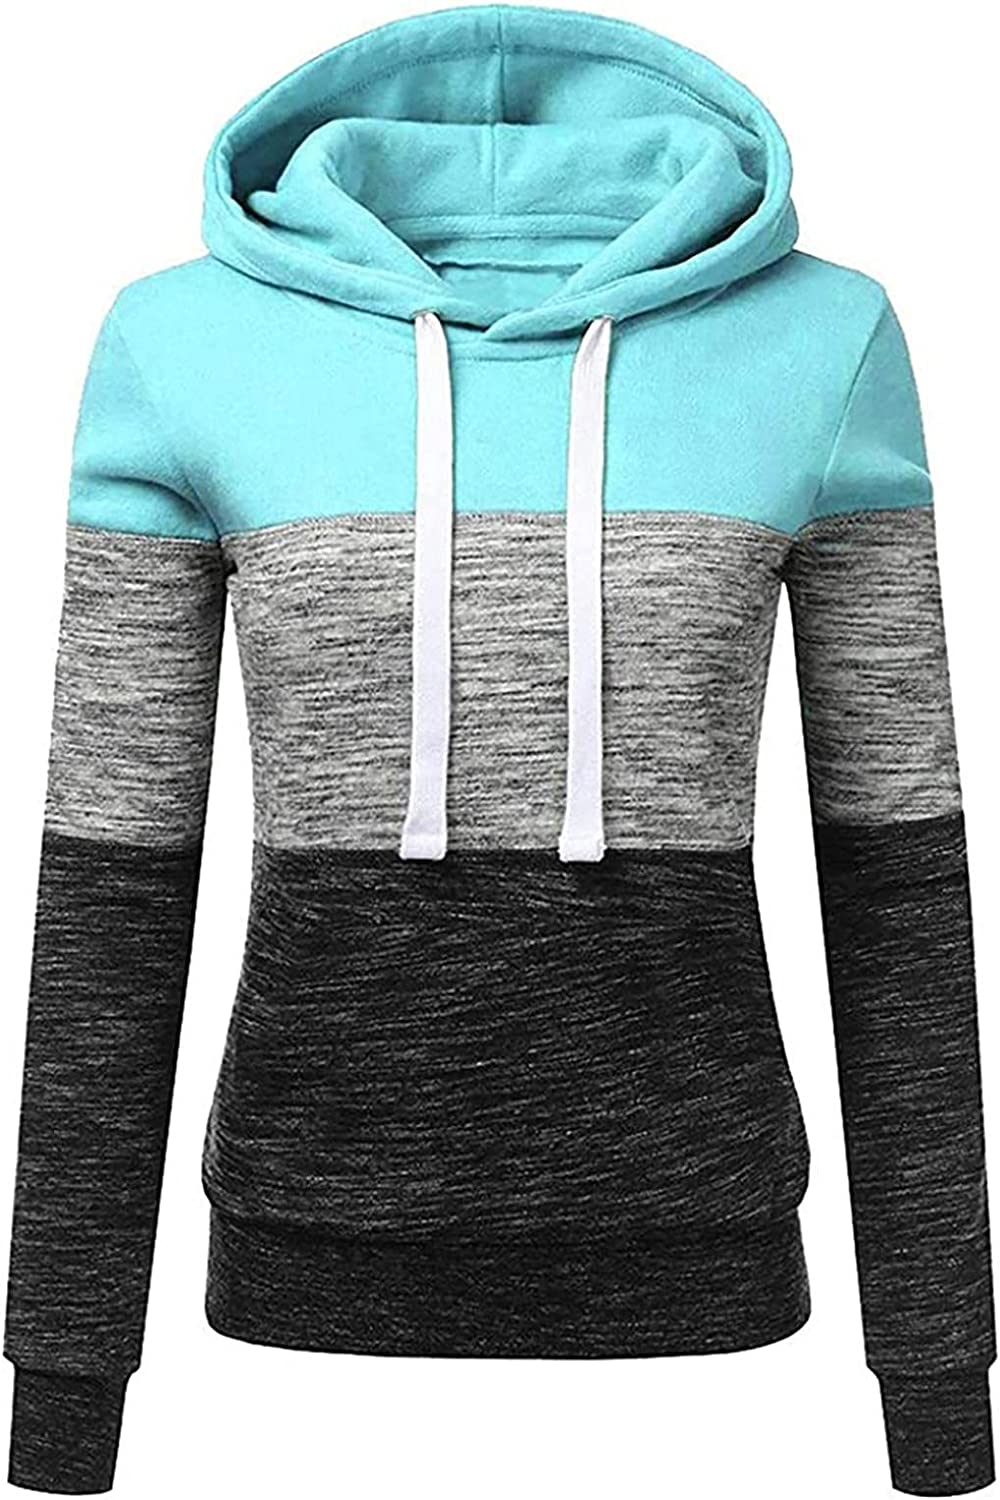 Women's Plus Size Hoodies Sweatshirts Long Sleeve Color Block Soft Drawstring Hooded Sweater Pullover Tops Shirts Sweaters